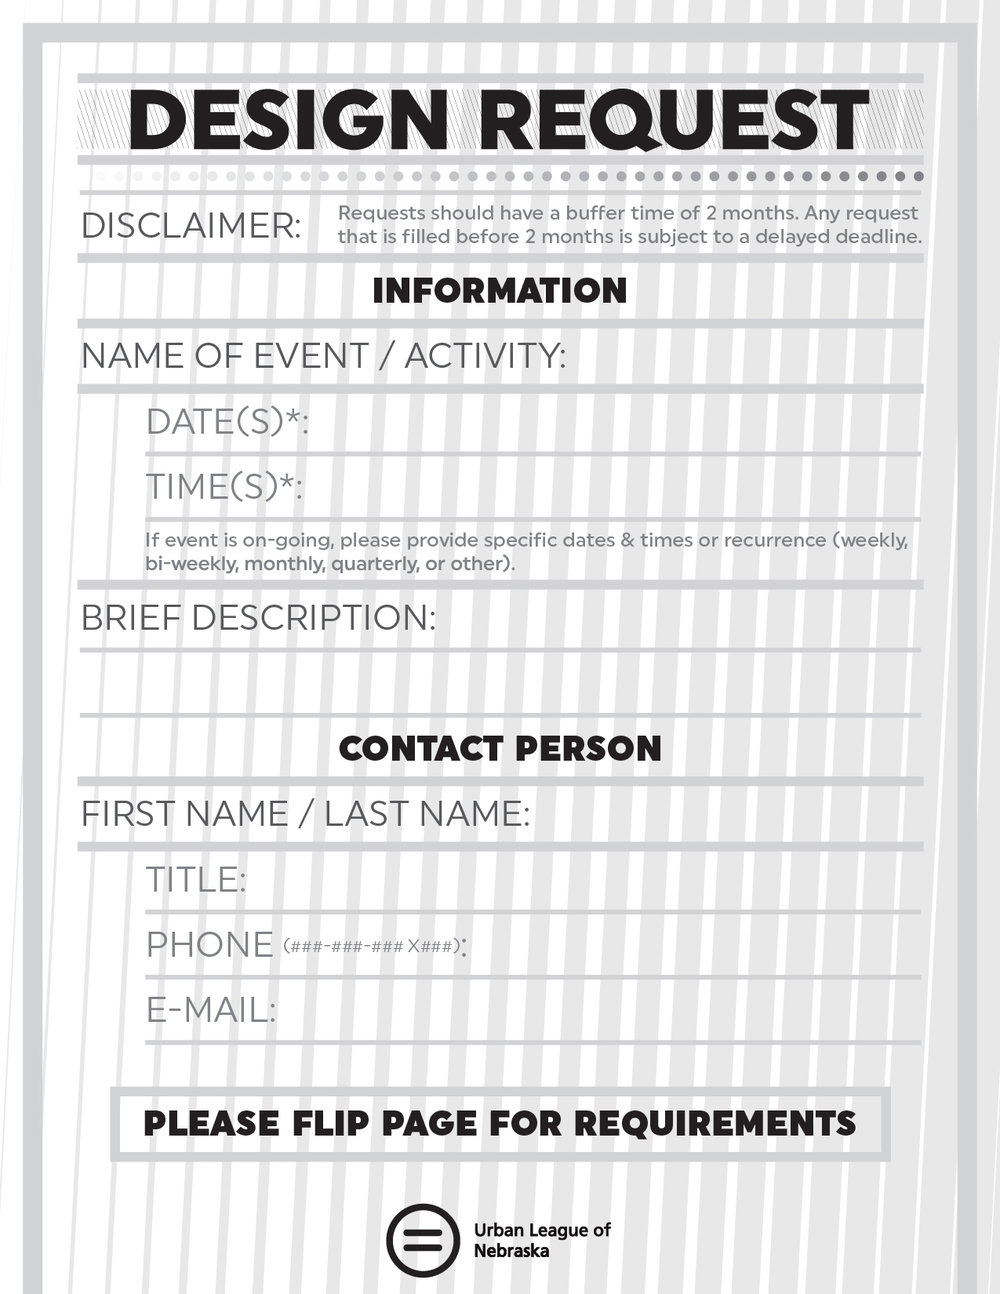 2016 ULN Design Request Form Original-01.jpg